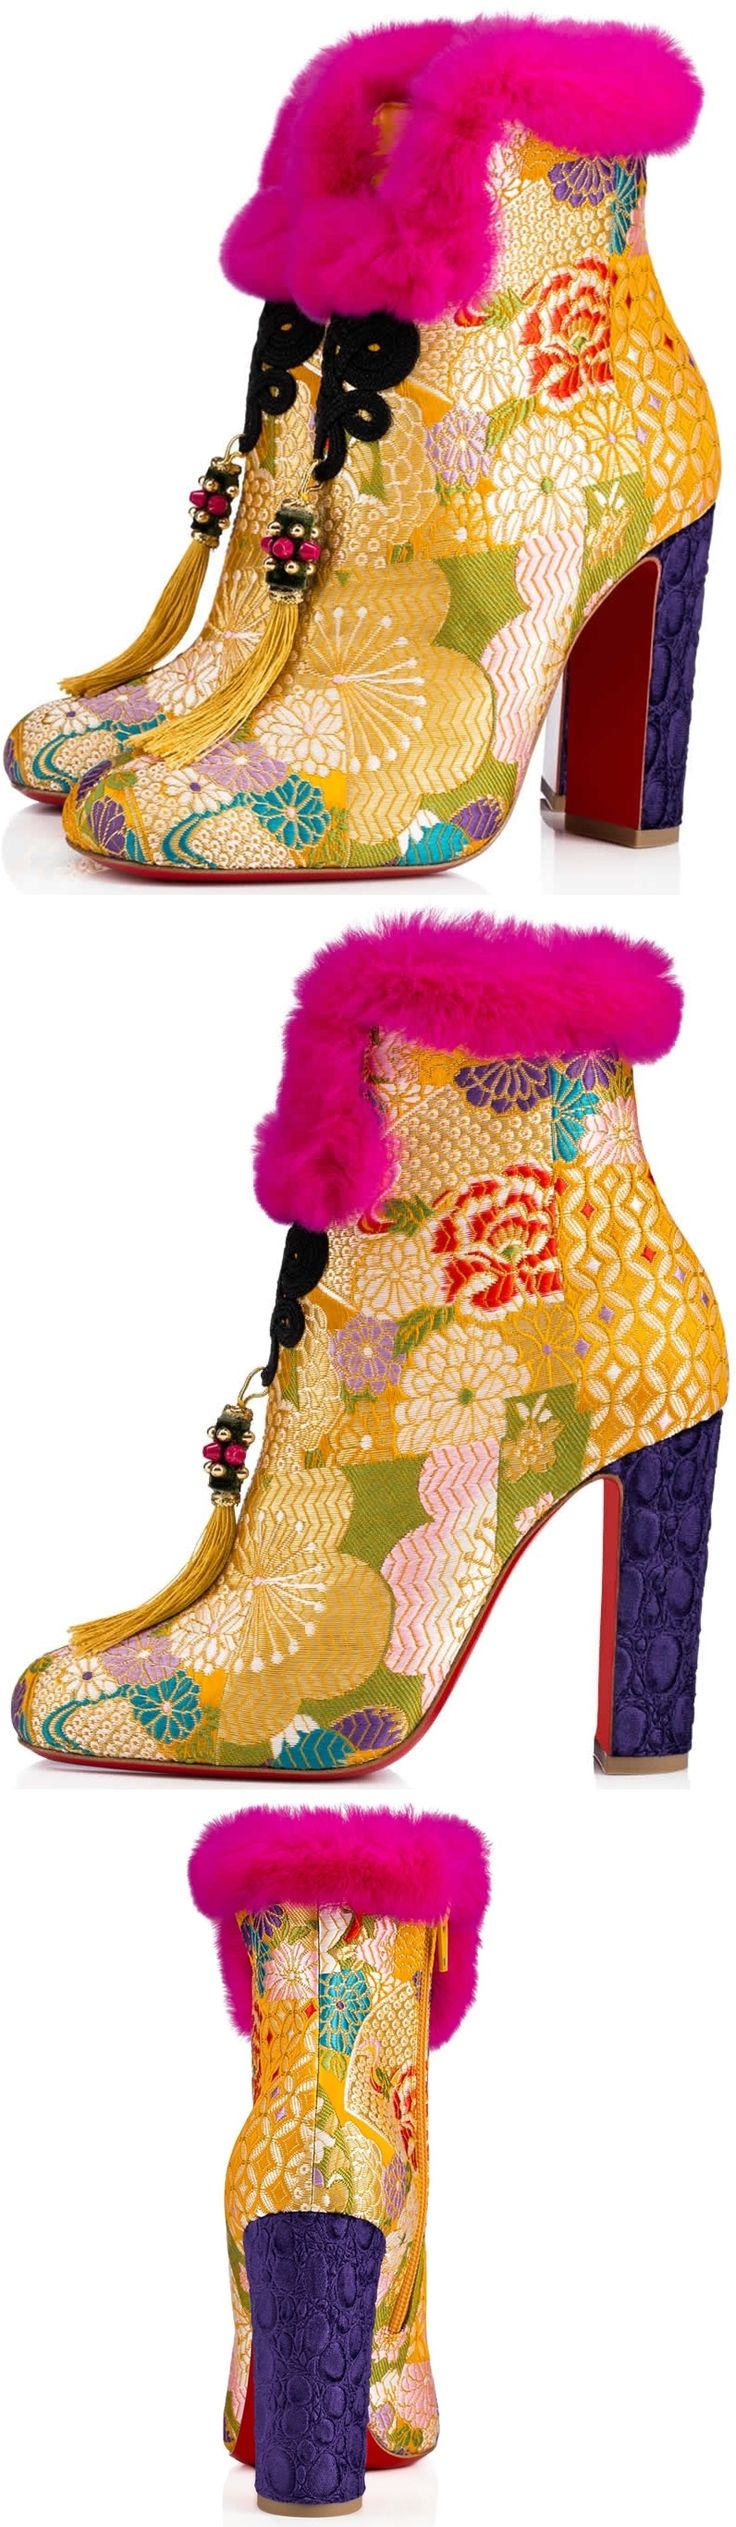 """May Wong"" brings Far Eastern beauty to your Fall/Winter wardrobe with an exquisite Chinese inspired floral jacquard and traditional tassel embellishment. This statement boot features a 100mm embossed velvet heel and is topped with the softest ultra rose orylag rabbit fur trim."